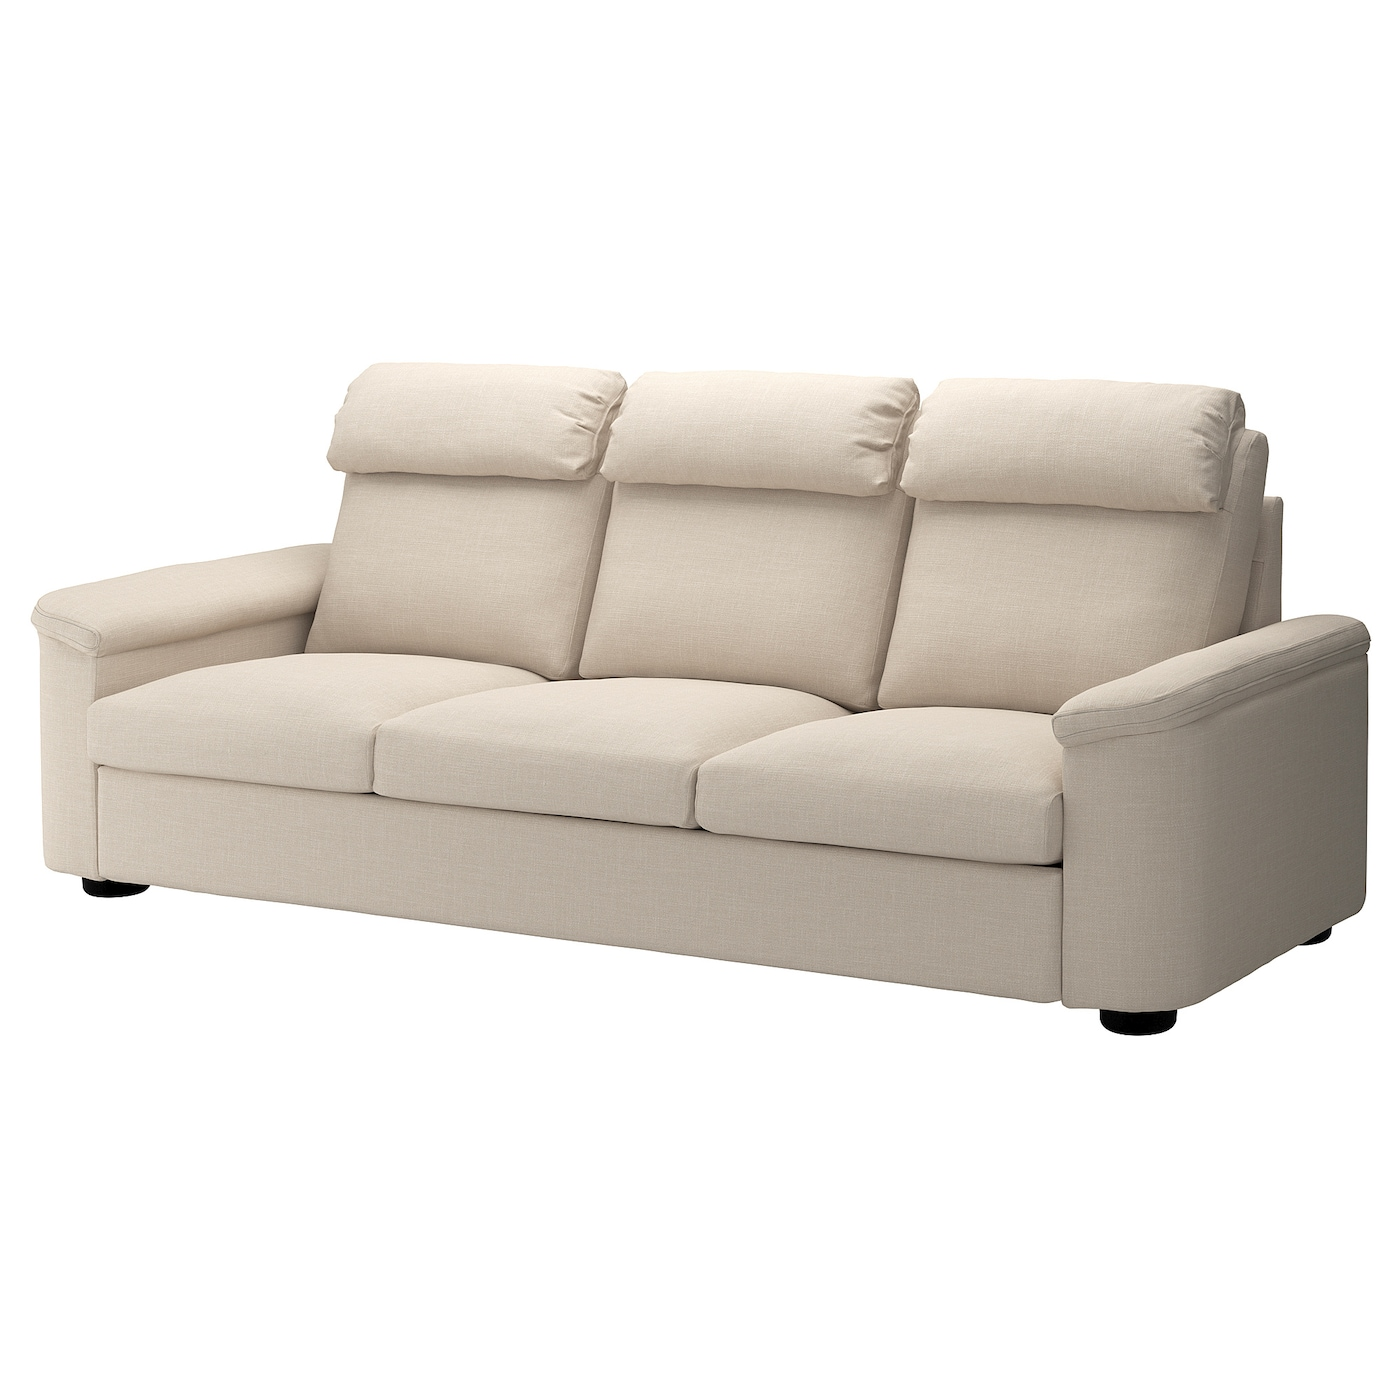 Ikea Lidhult 3 Seat Sofa The Cover Is Easy To Keep Clean Since It